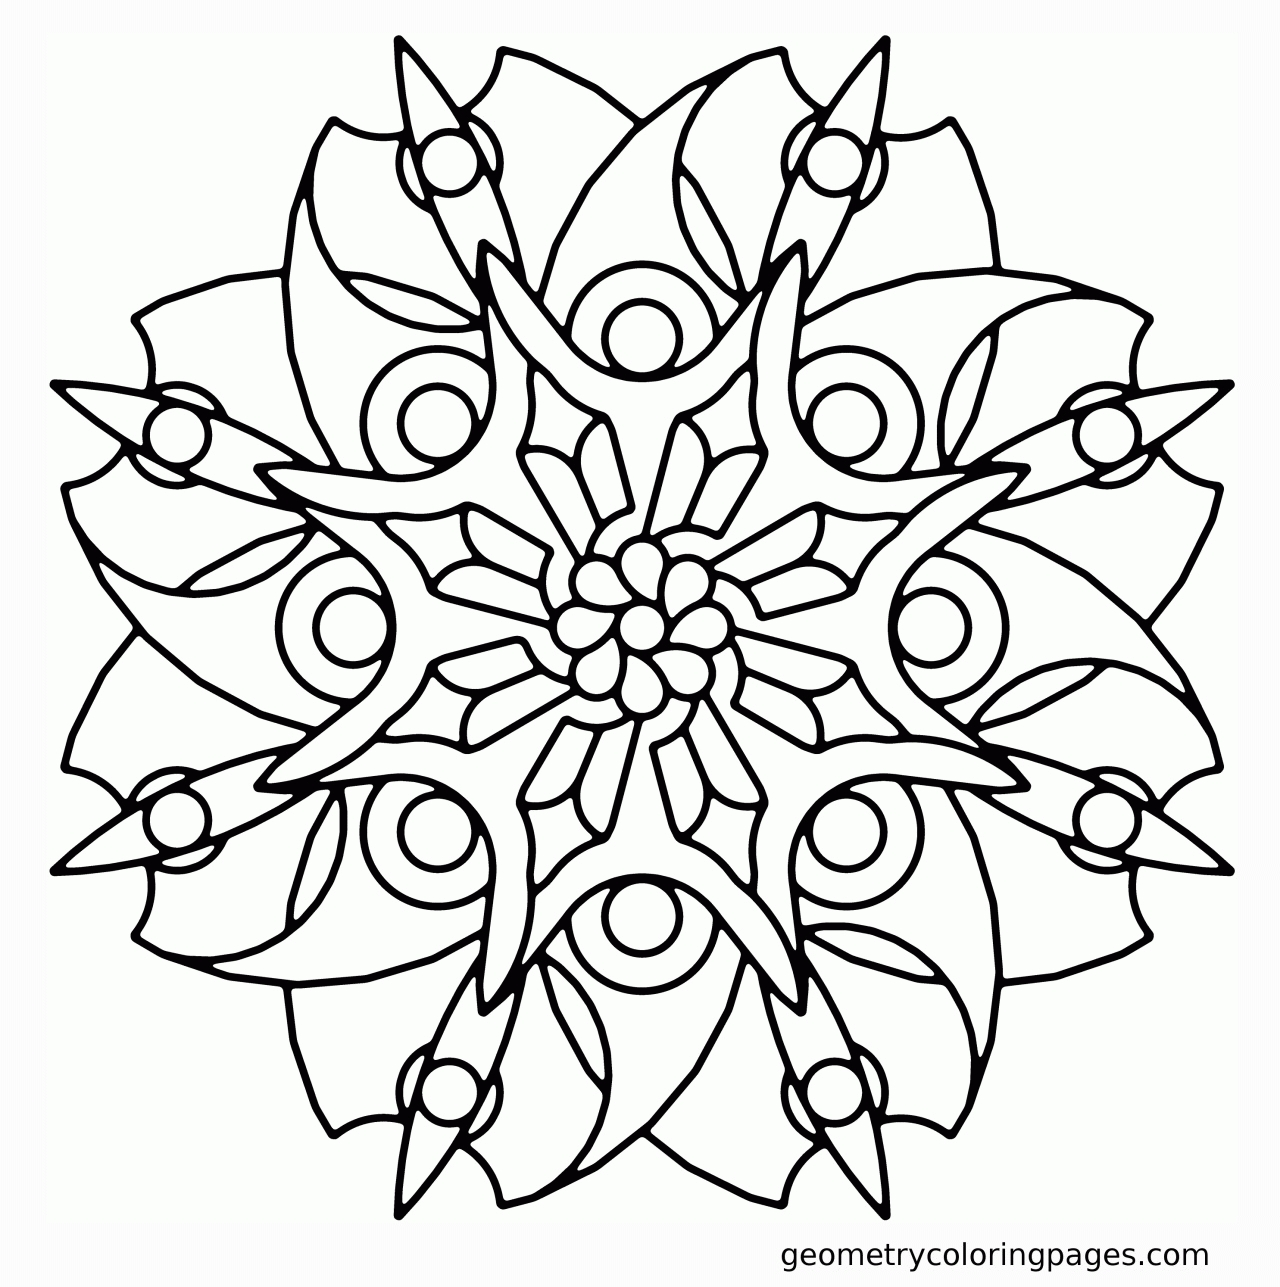 20 Geometric Coloring Pages Pictures   FREE COLORING PAGES